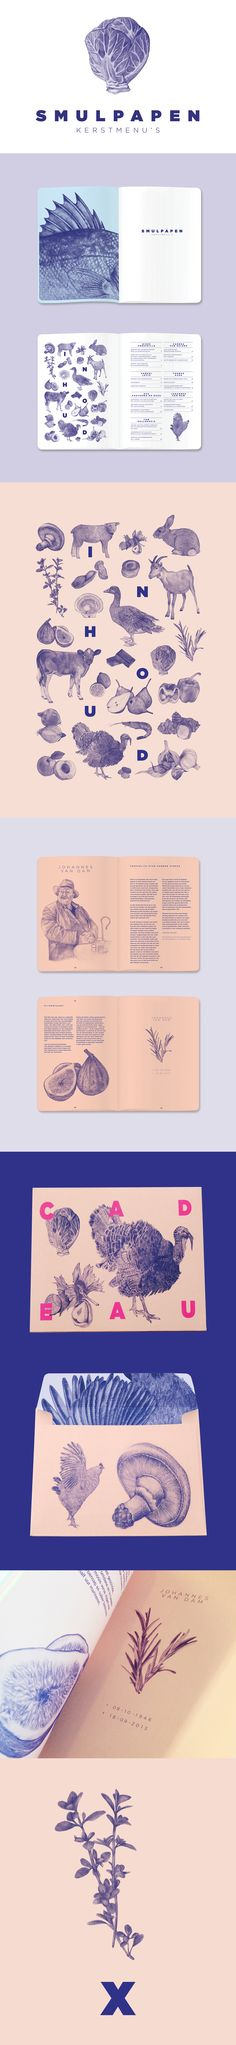 S M U L P A P E N by Mara Vissers menu design branding editorial layout